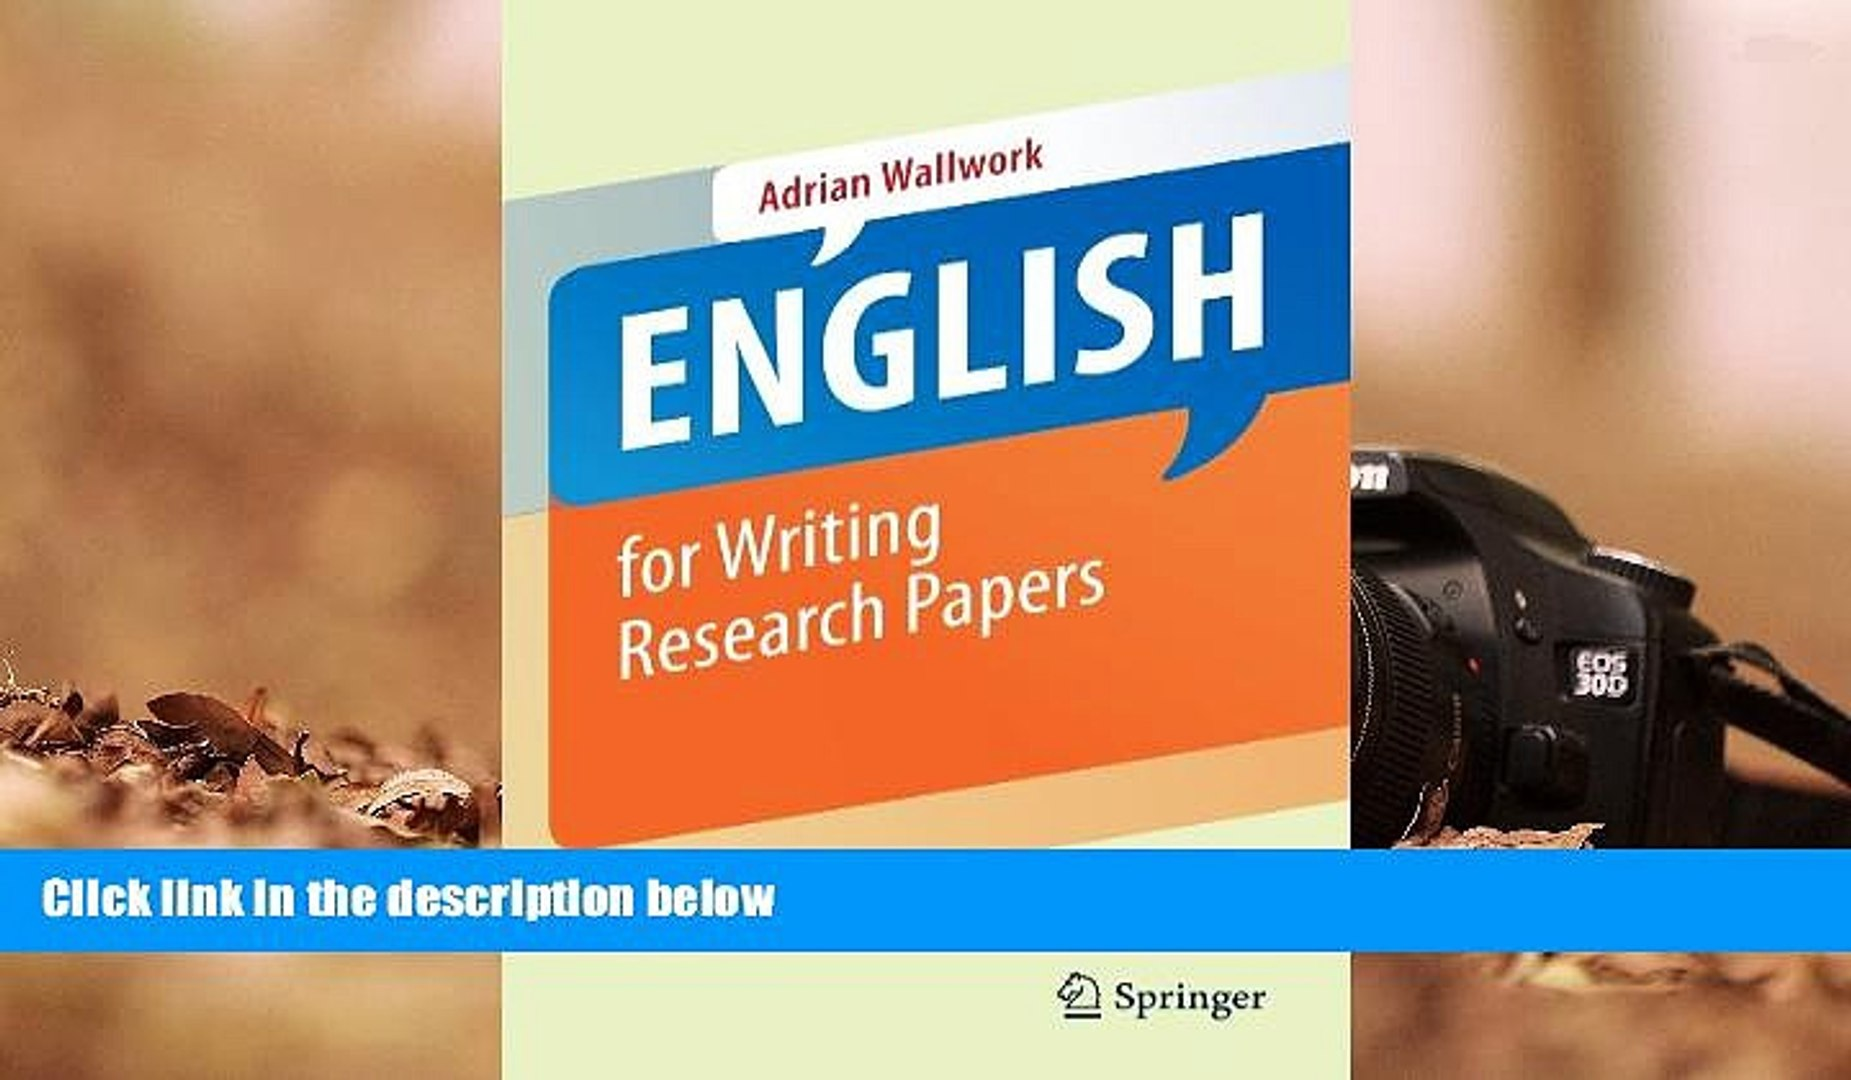 013 X1080 Jtf English For Writing Researchs Adrian Wallwork Pdf Marvelous Research Papers 2011 Full